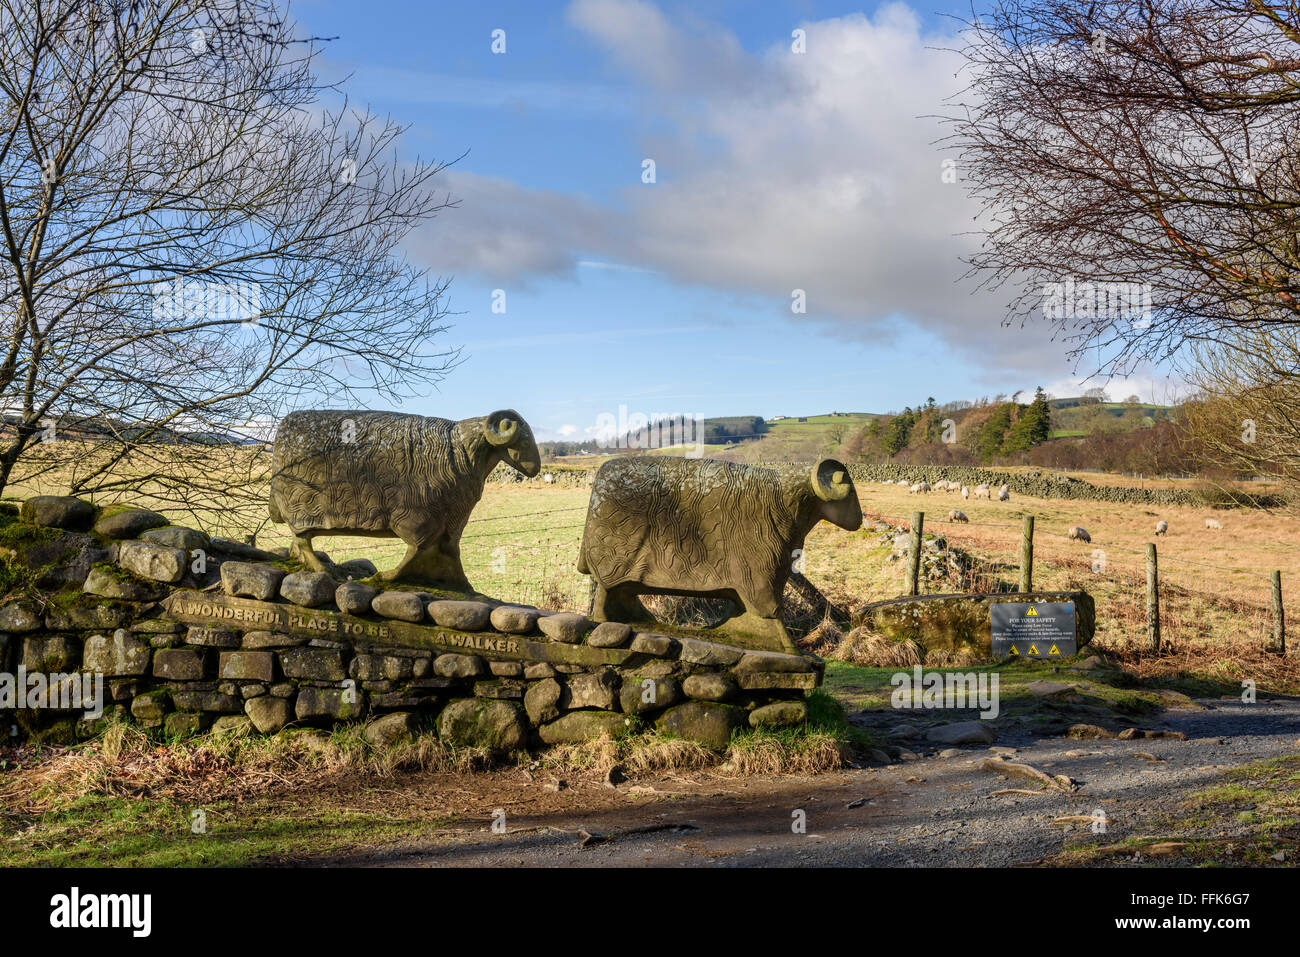 Teesdale  - stone sheep sculpture - Stock Image